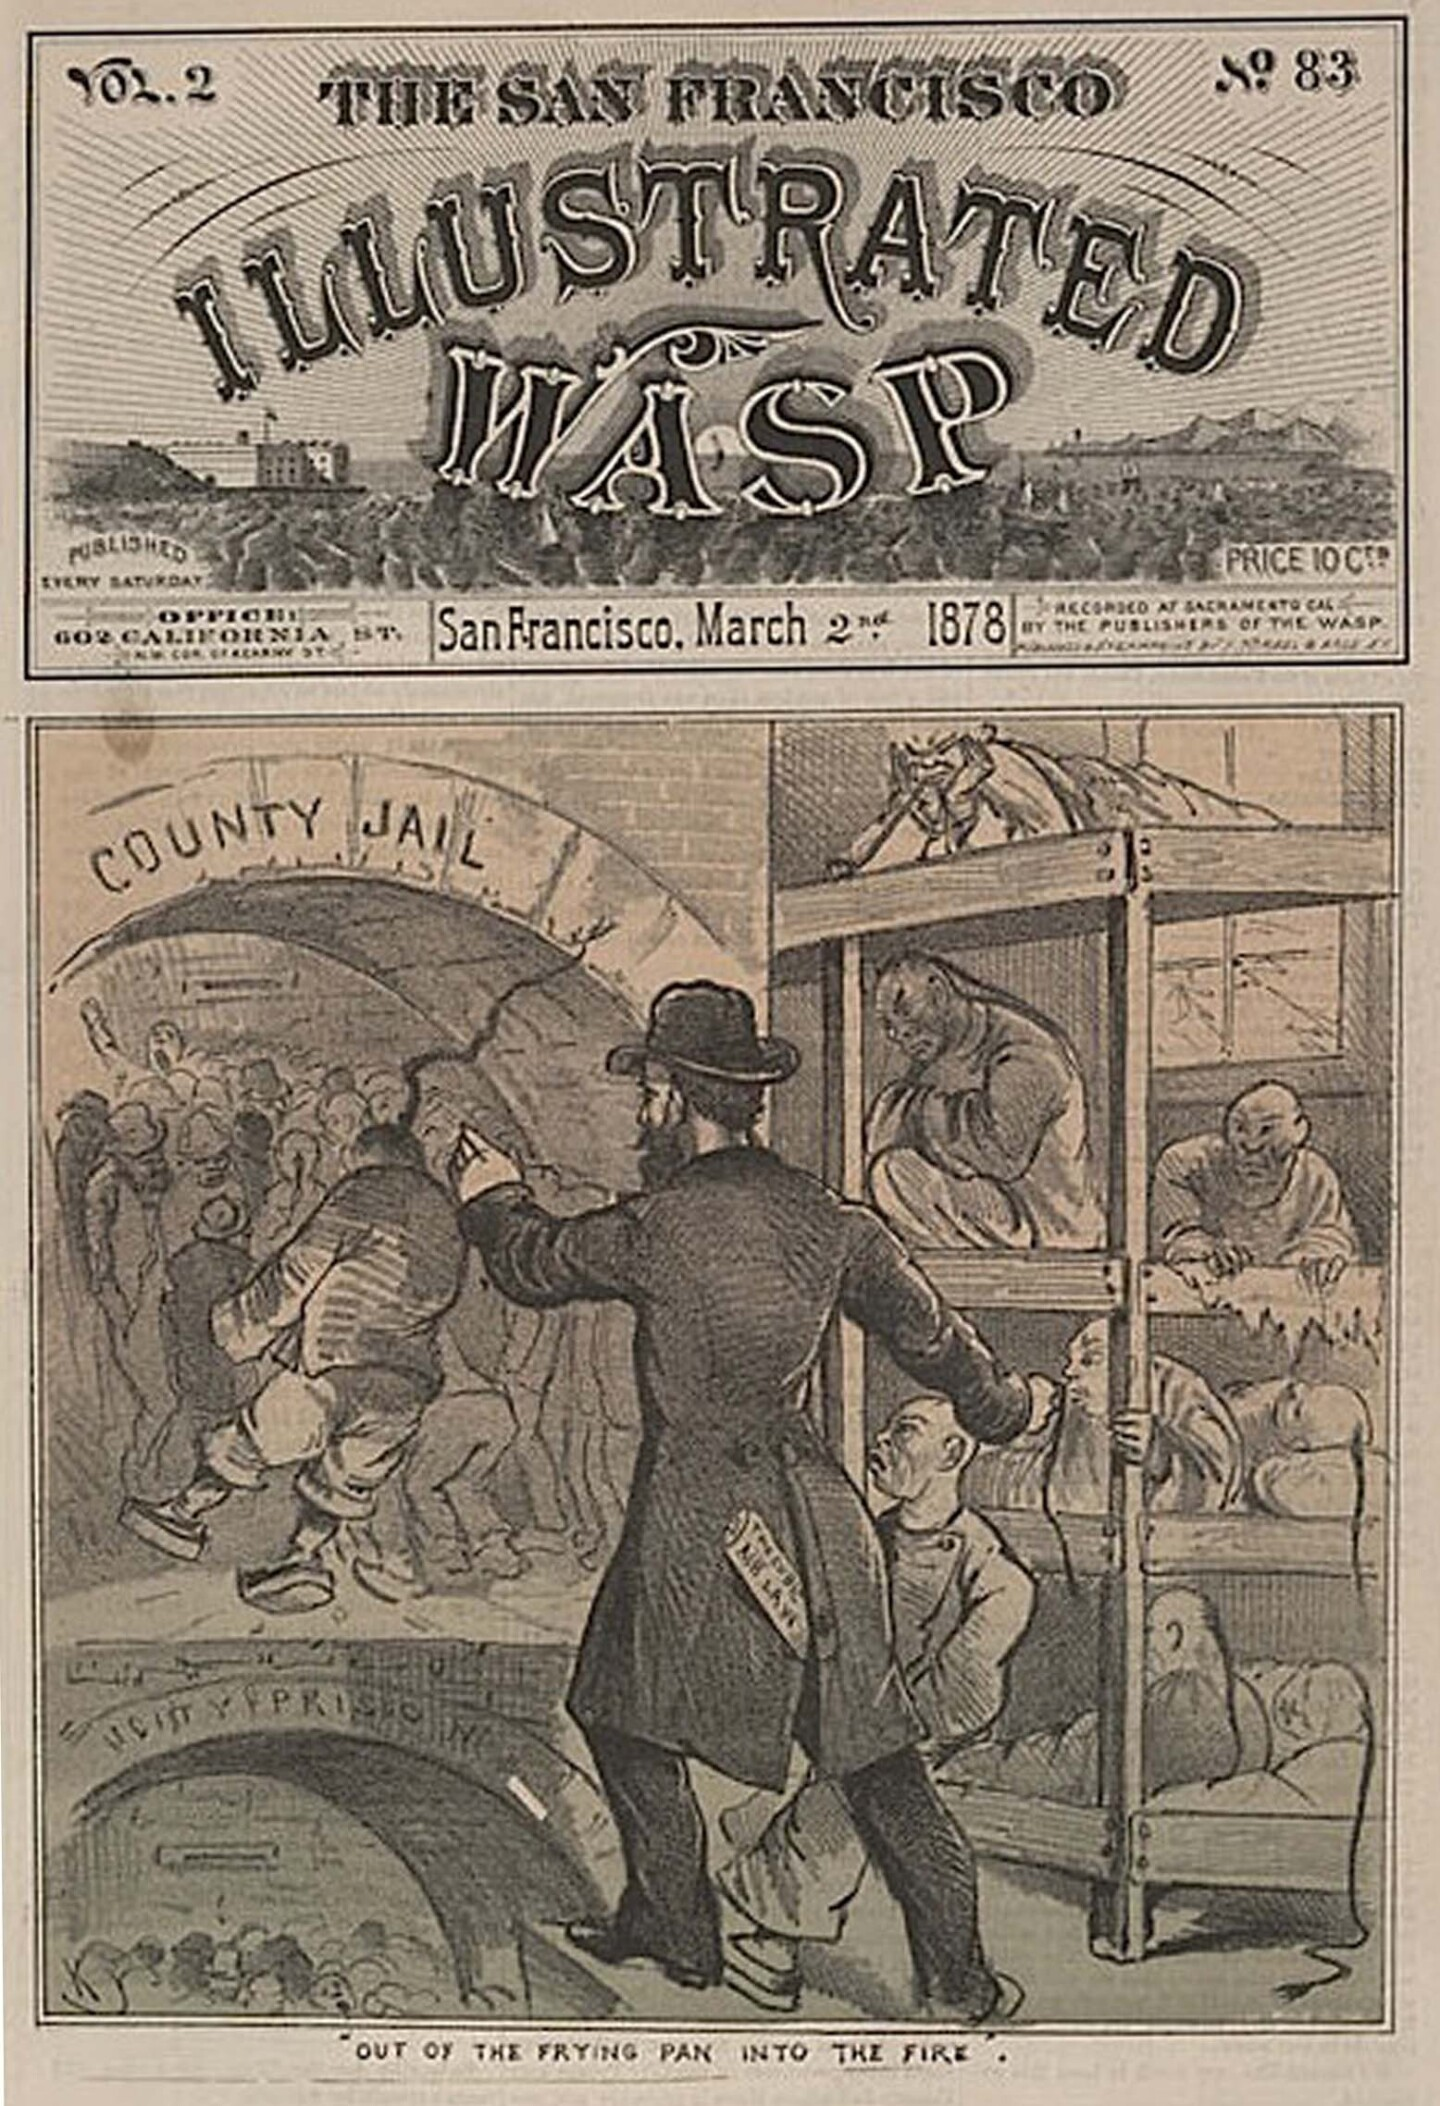 Front cover of The San Francisco Illustrated Wasp from March 2, 1878 illustrating the Cubic Air Law arrests